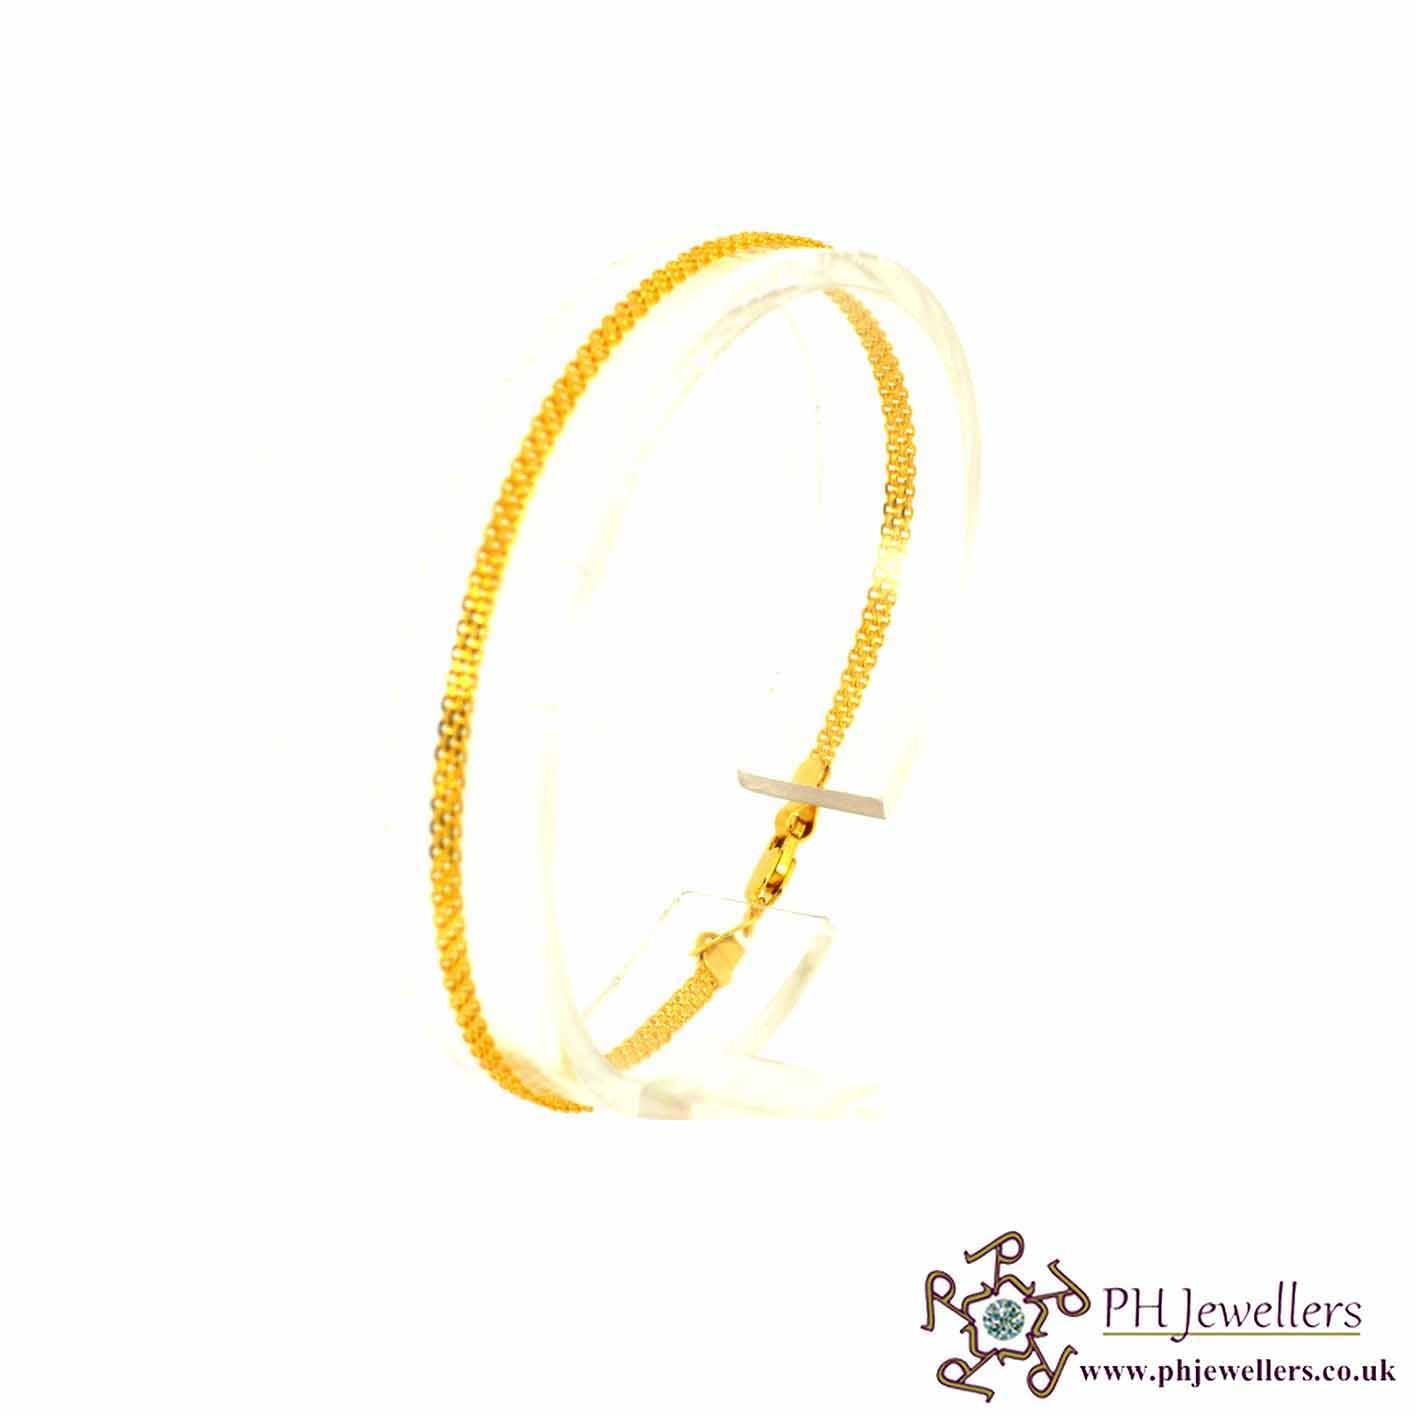 22ct 916 Hallmark Yellow Gold Bracelet LB6